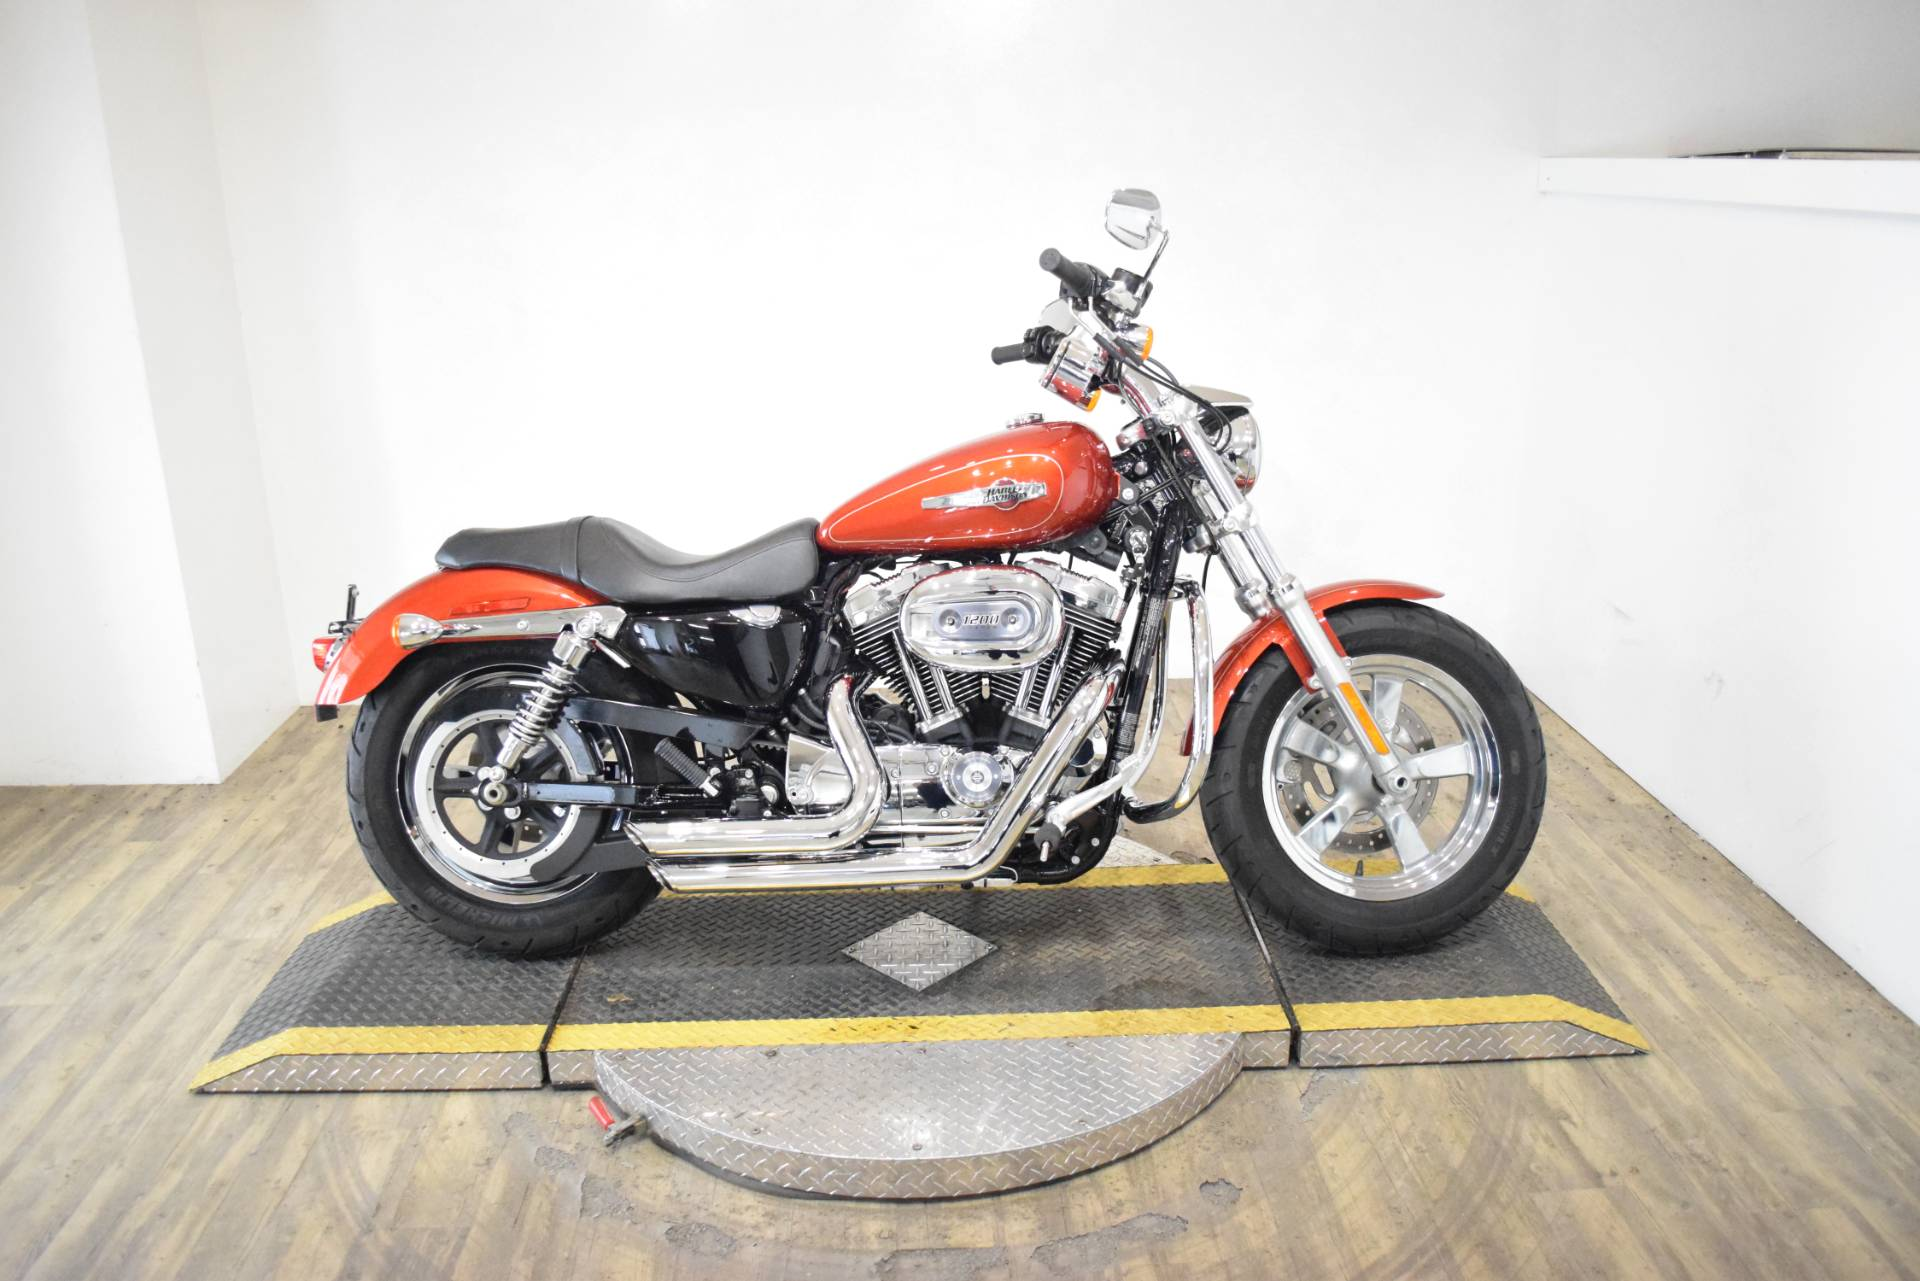 2014 Harley-Davidson XL1200 Sportster in Wauconda, Illinois - Photo 1